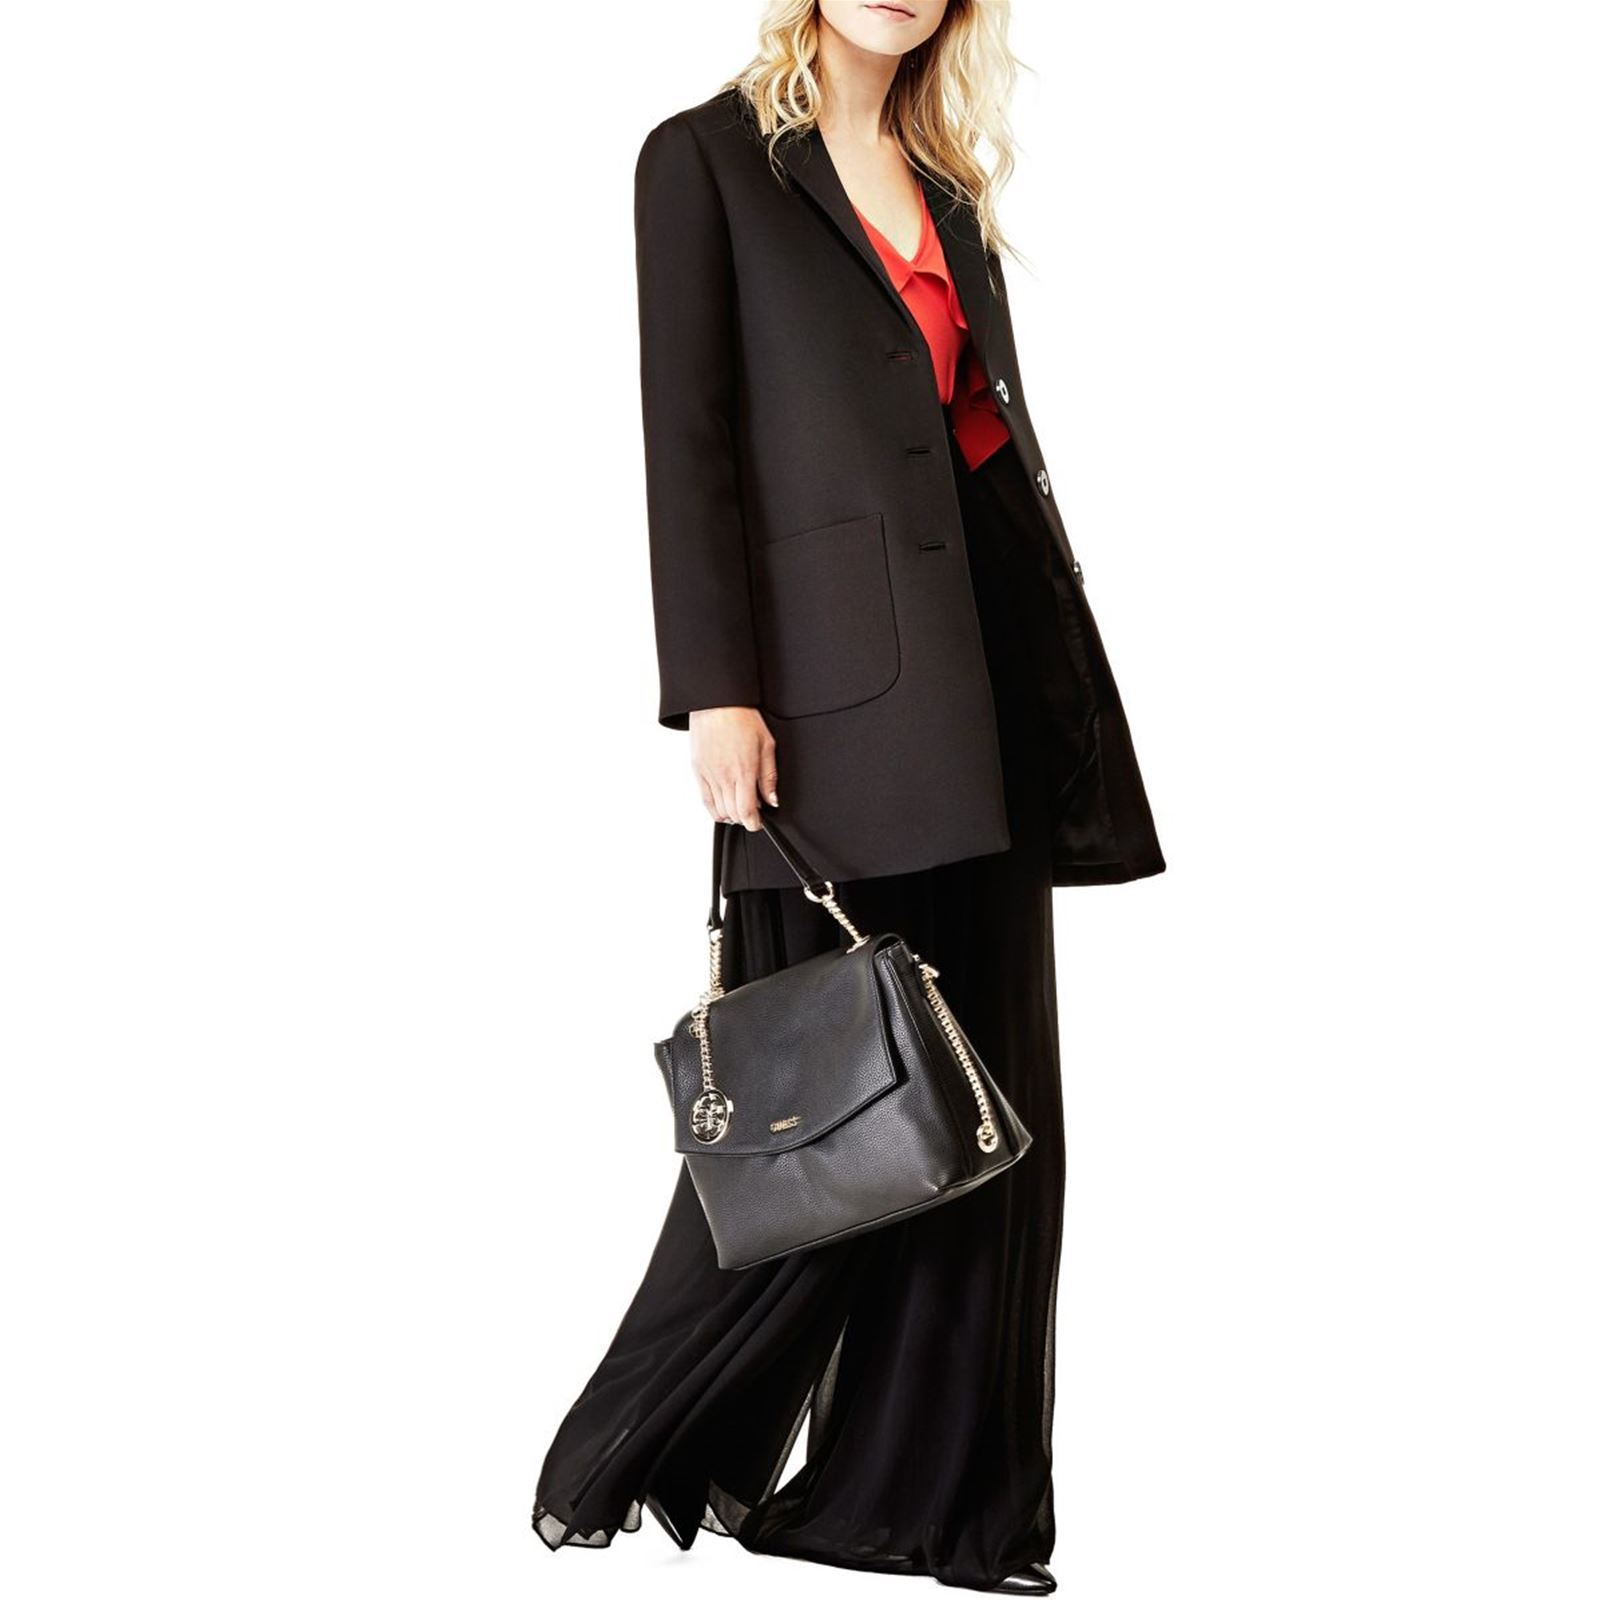 Isabeau NoirBrandalley Guess Guess Isabeau Sac Guess Sac Sac Isabeau NoirBrandalley NoirBrandalley Guess k8nOPX0w